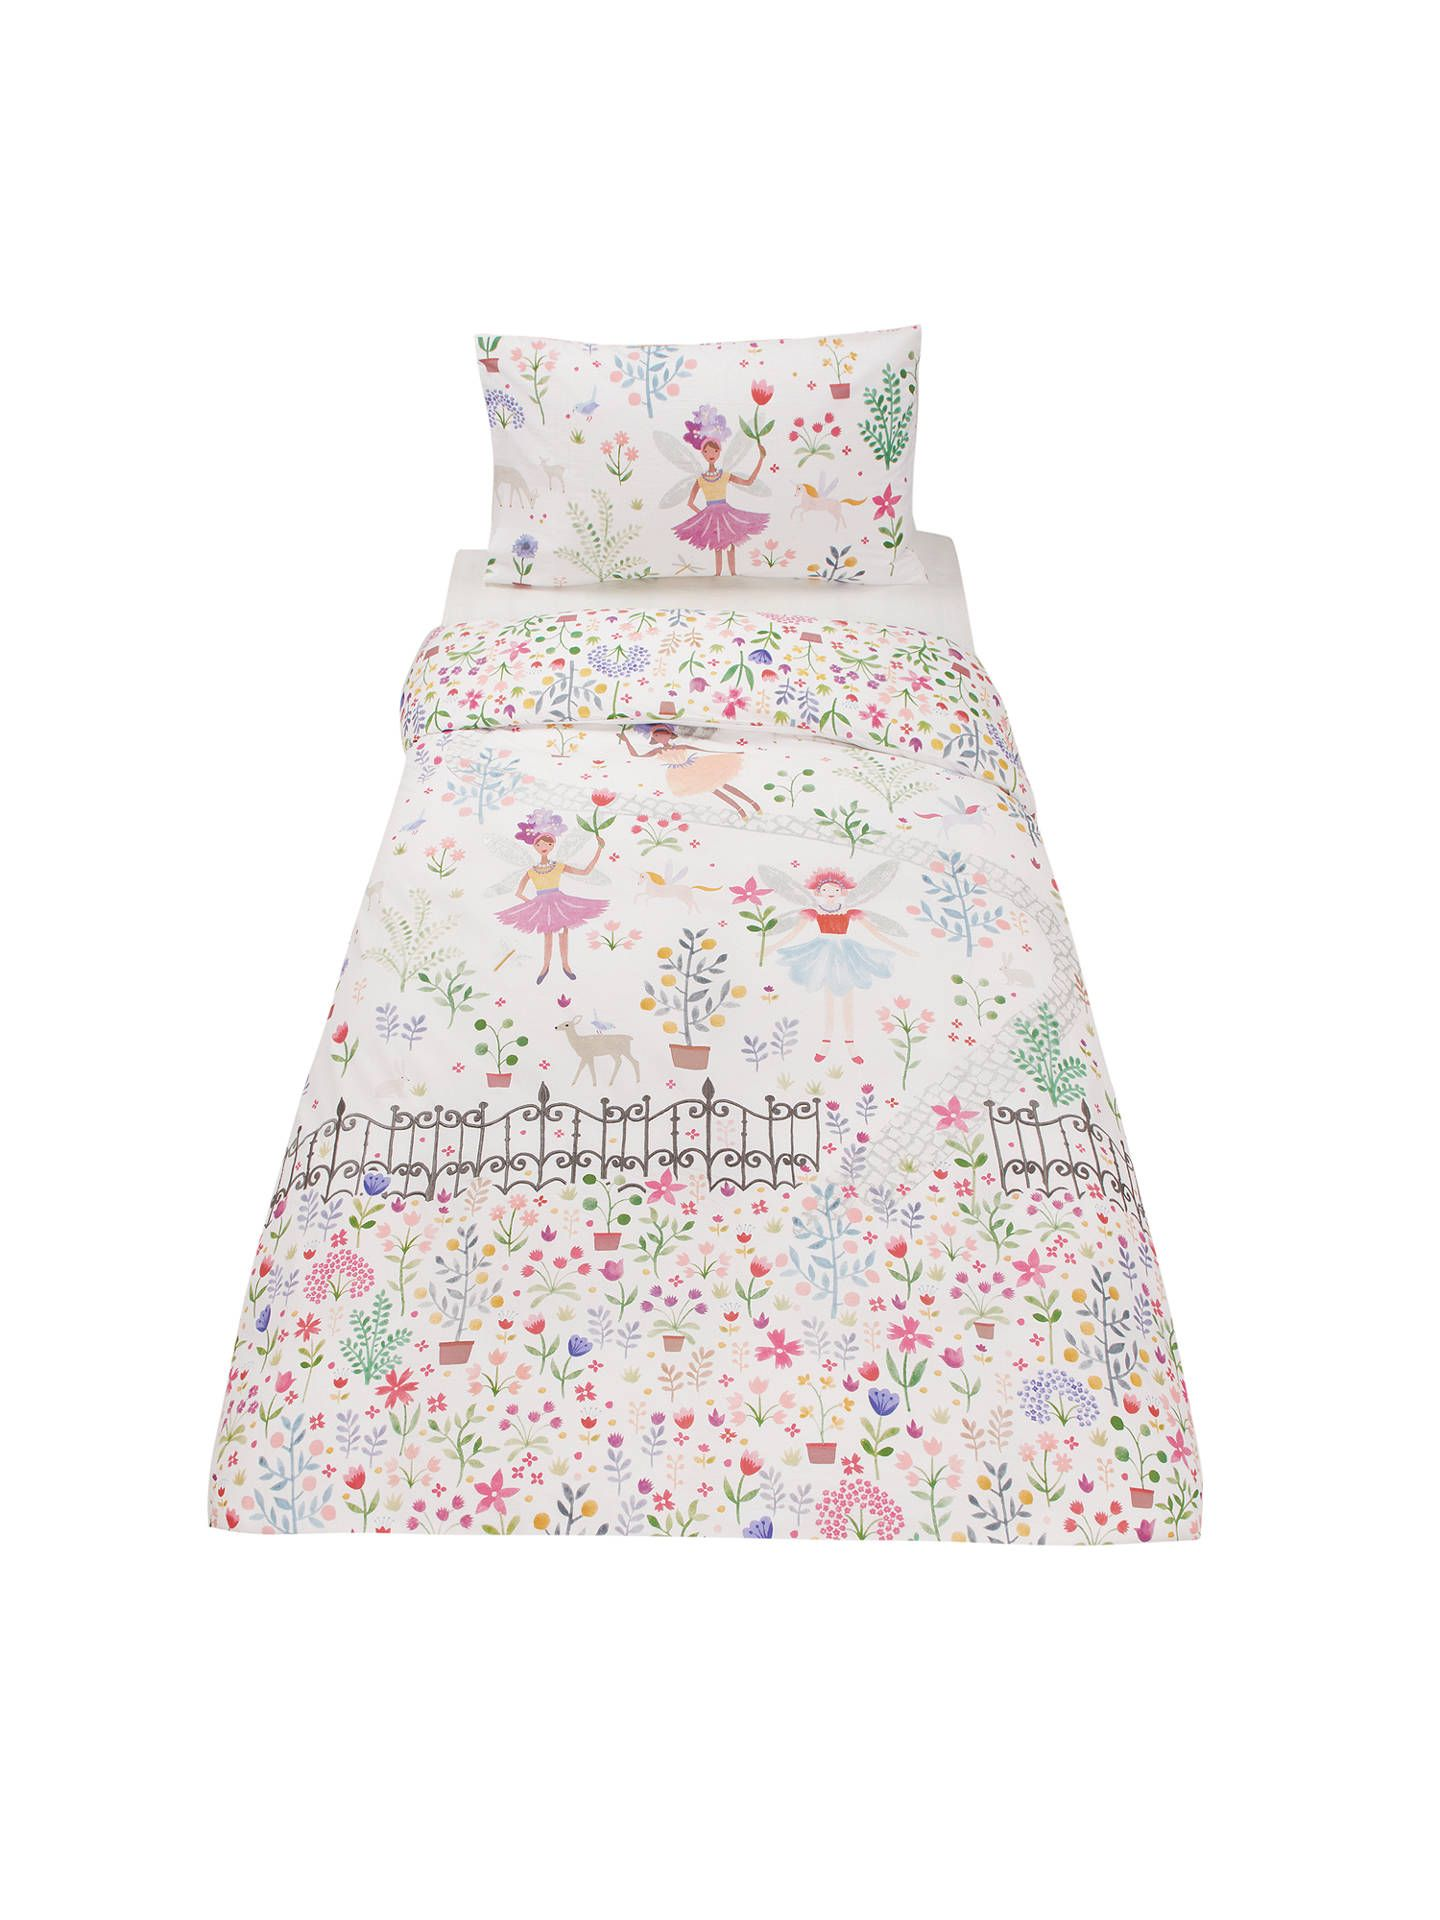 Little home at john lewis country fairies embellished duvet cover